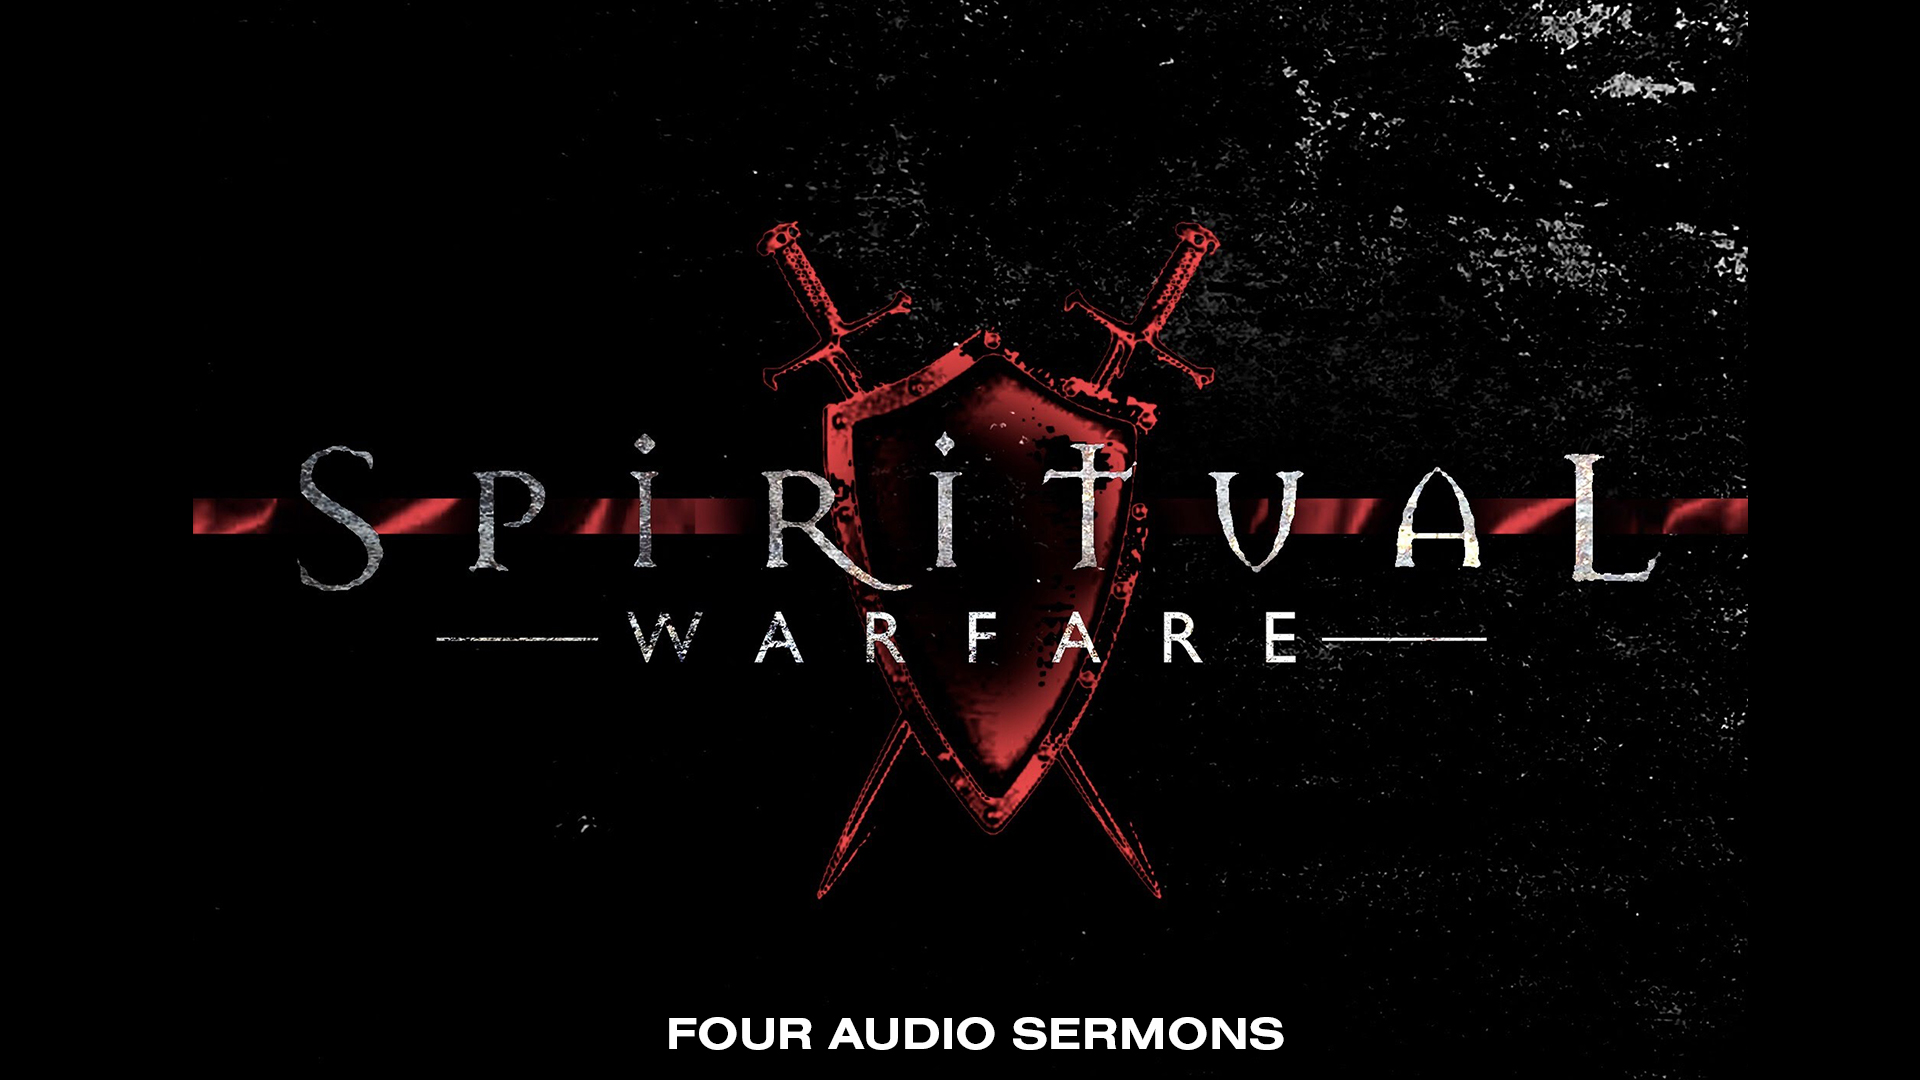 https://vladimirsavchuk.com/resources/spiritual-warfare-audio-series/